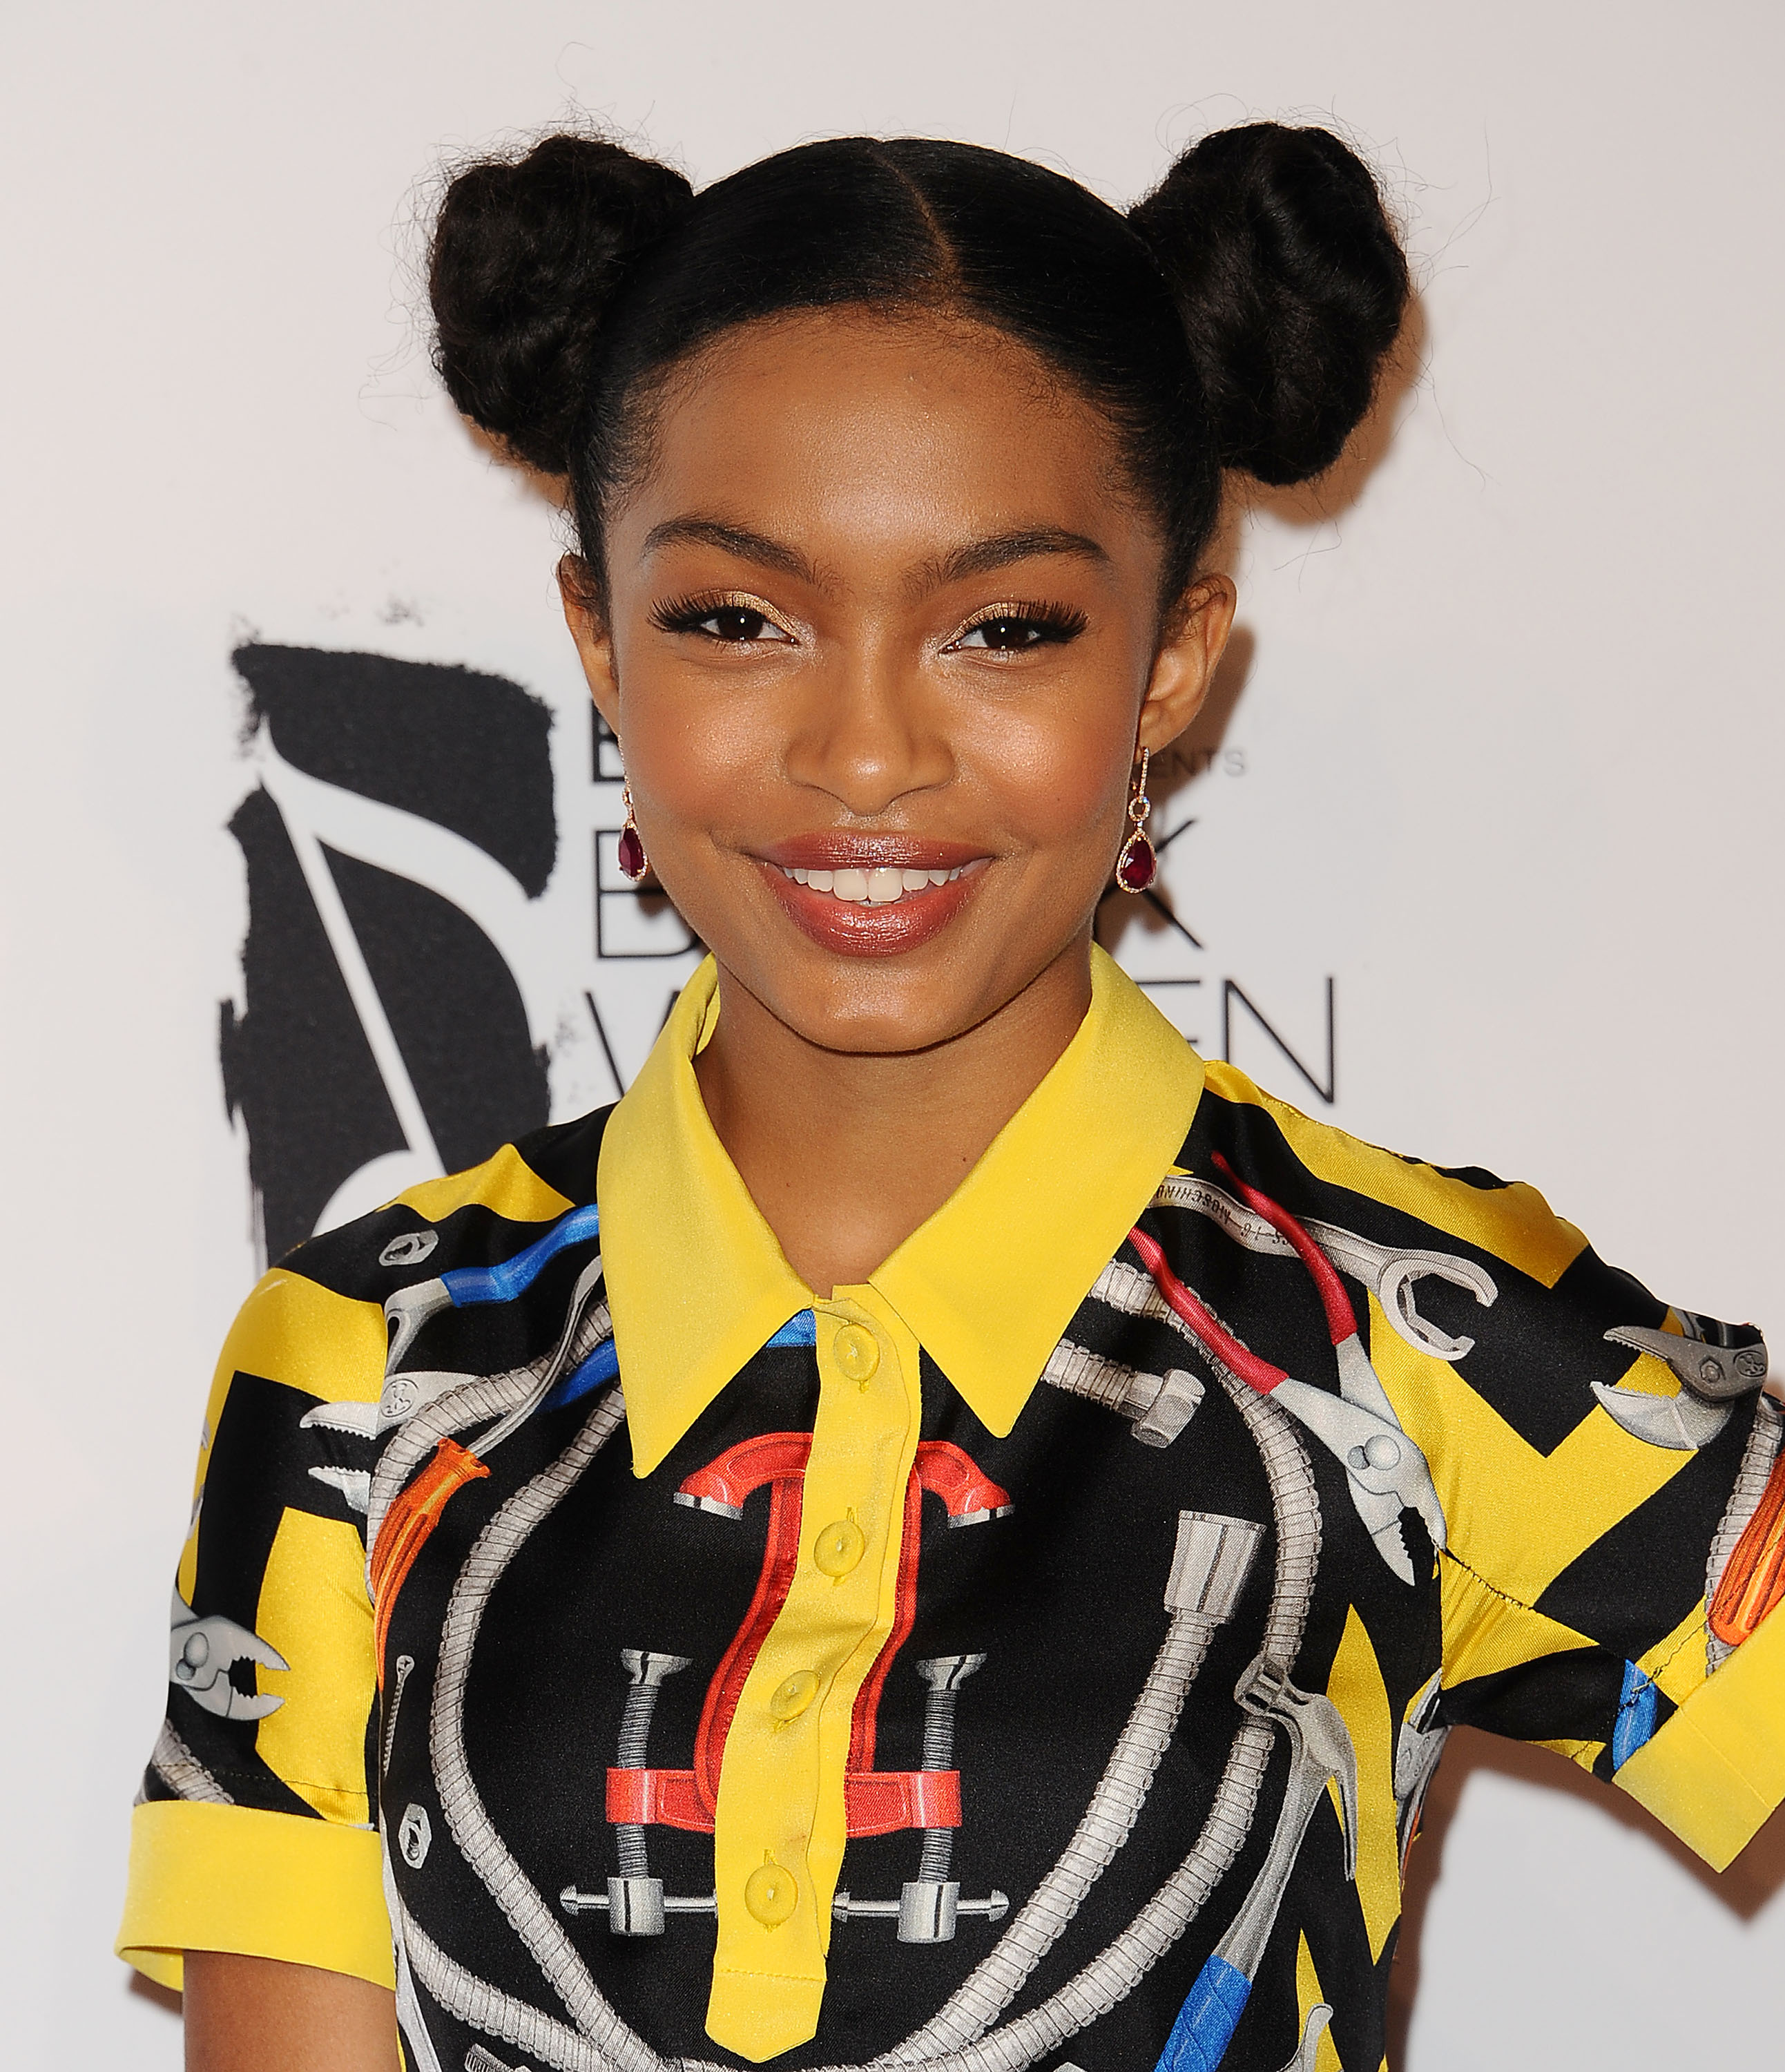 25 easy natural hairstyles for black women ideas for short 25 easy natural hairstyles for black women ideas for short medium length and long natural hair urmus Images